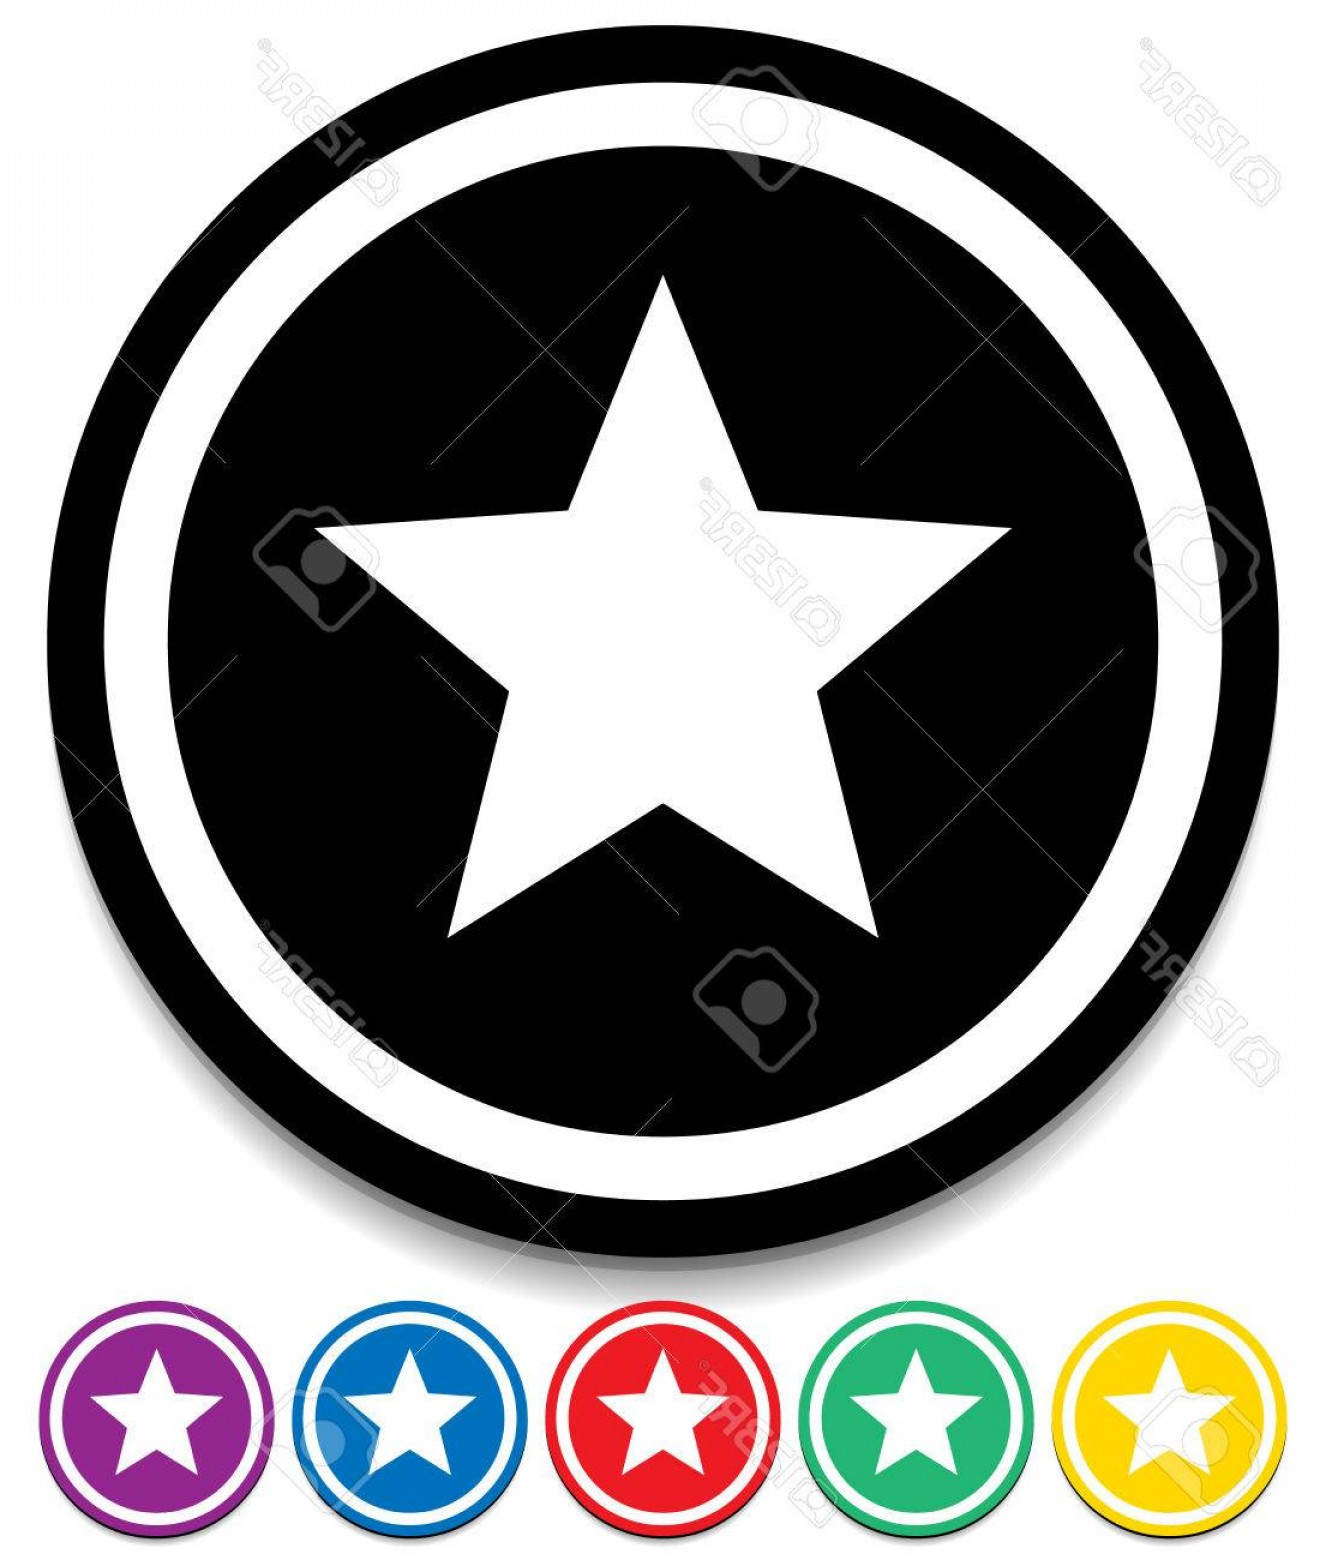 5 Point Star Vector Art: Photostock Vector Star Graphics Star Favorite Icon Pointed Star Vector